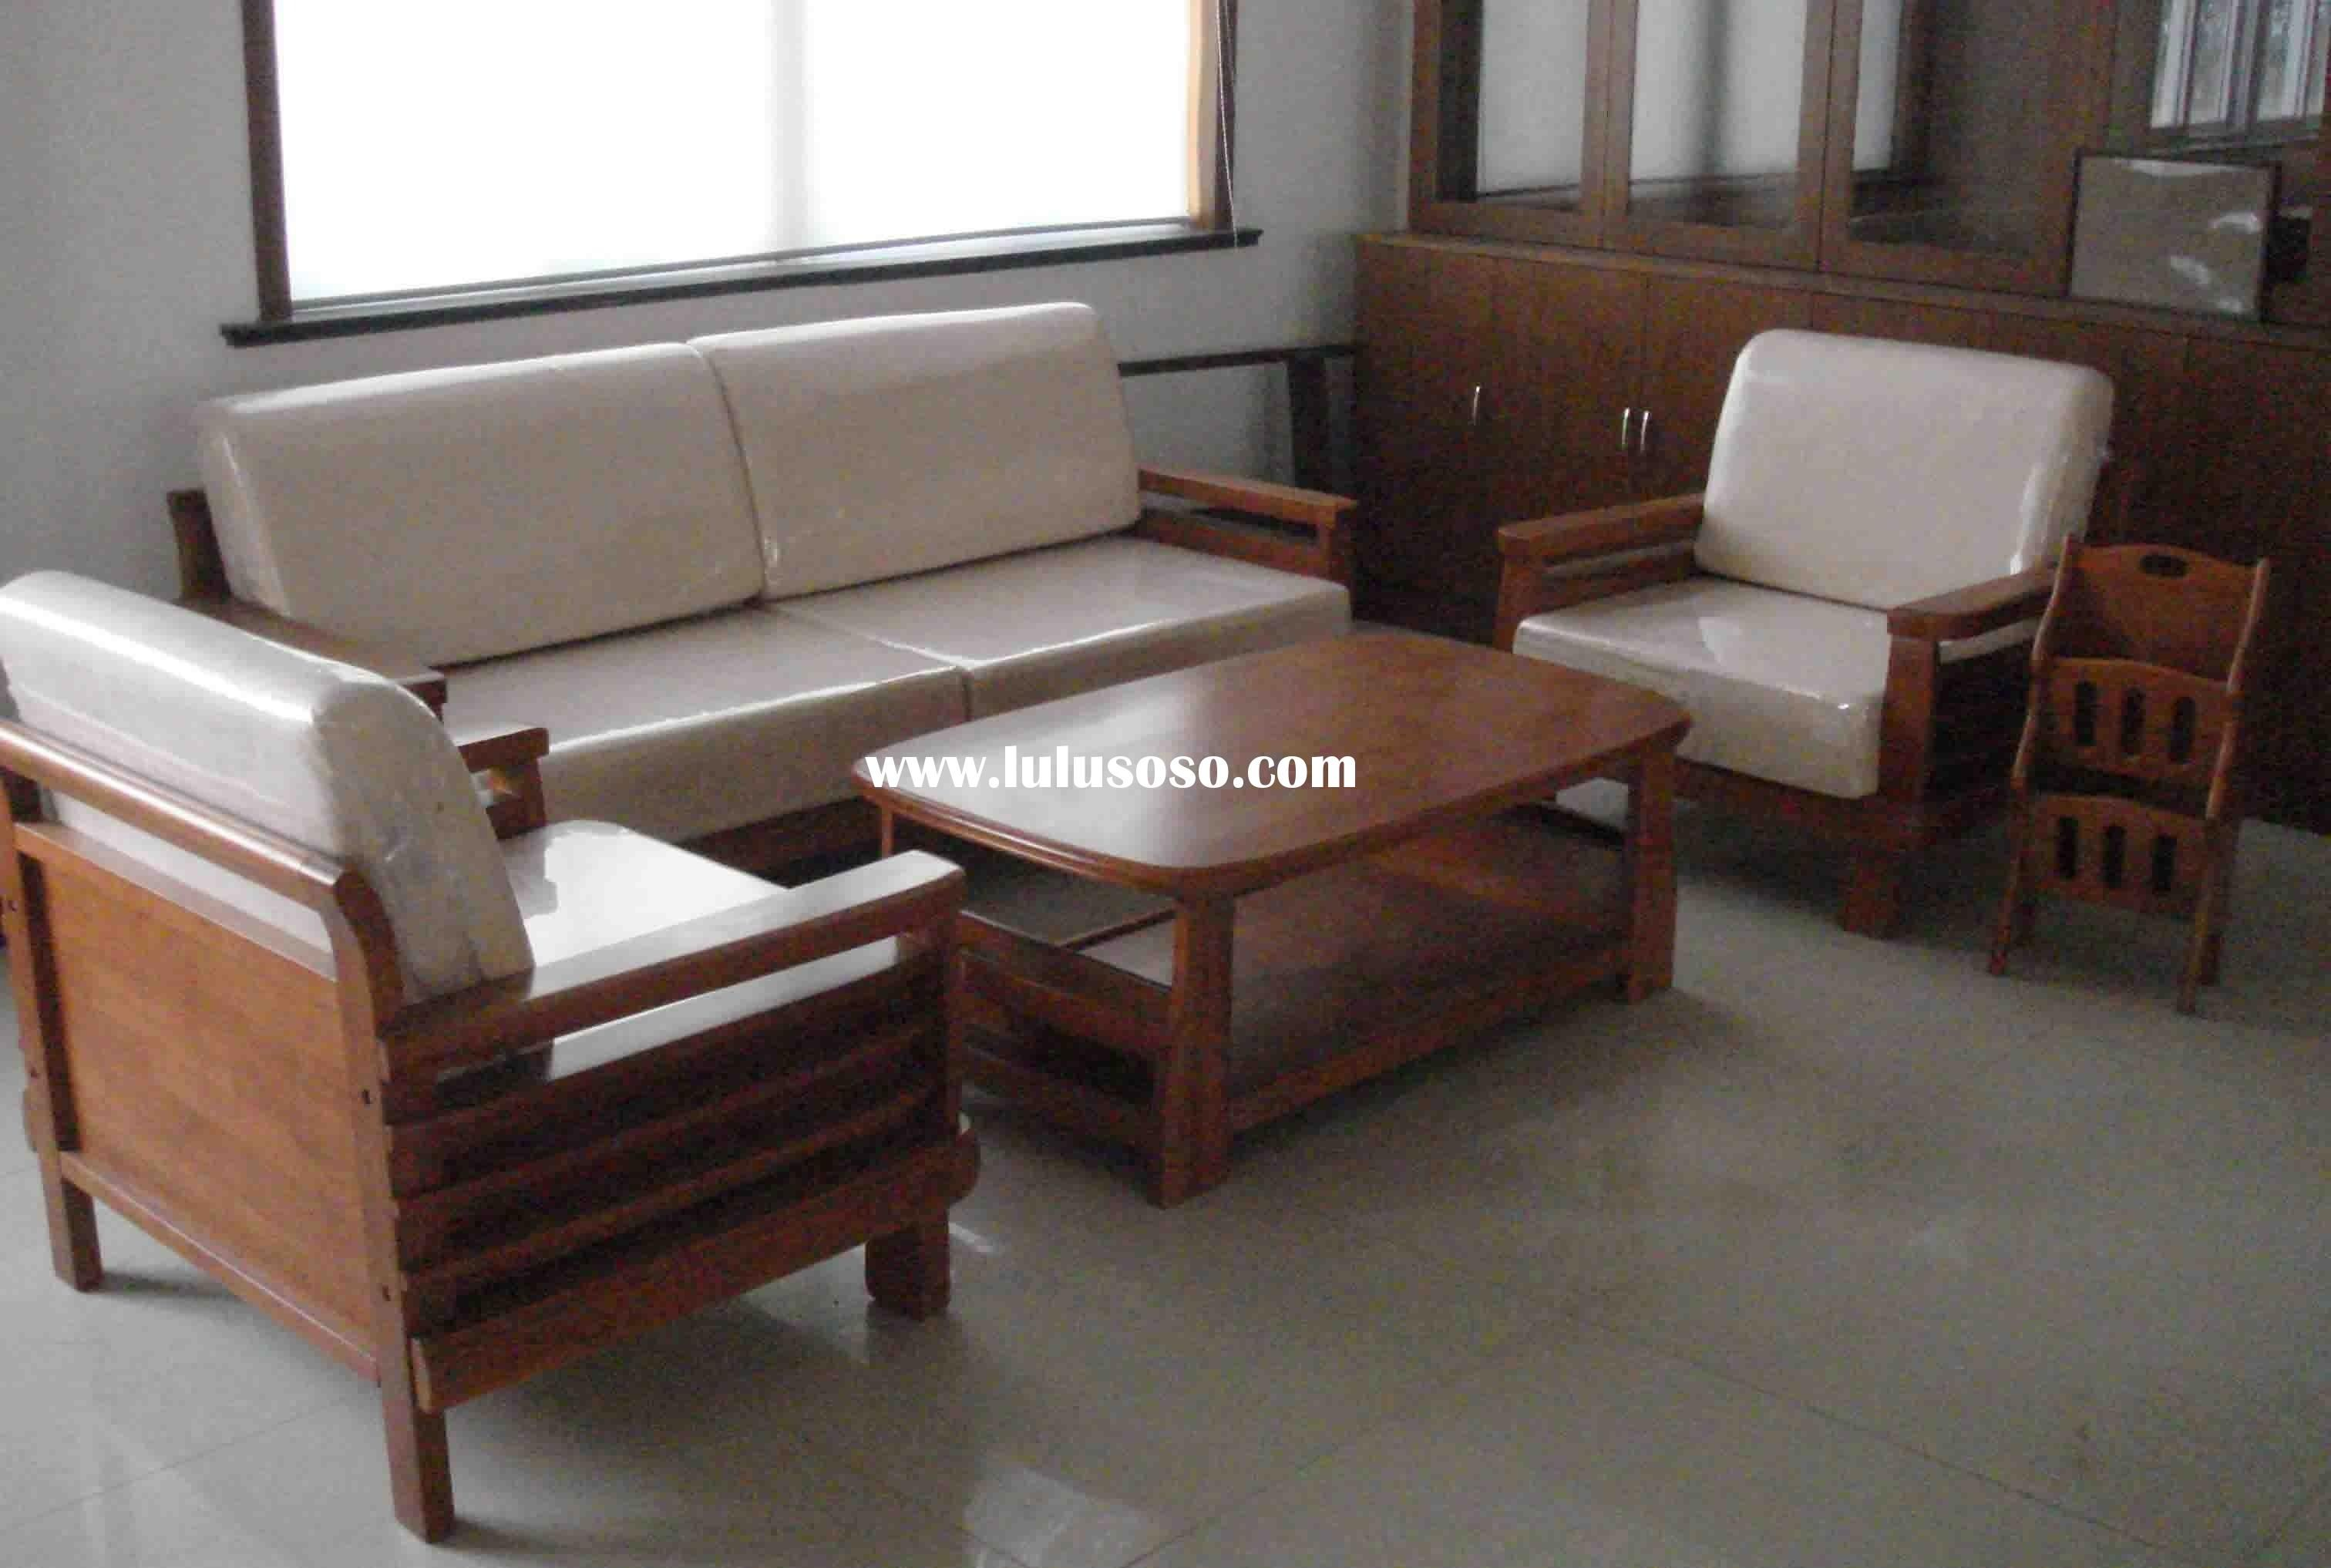 amazing modern style couches office furniture modern style wooden rh pinterest com